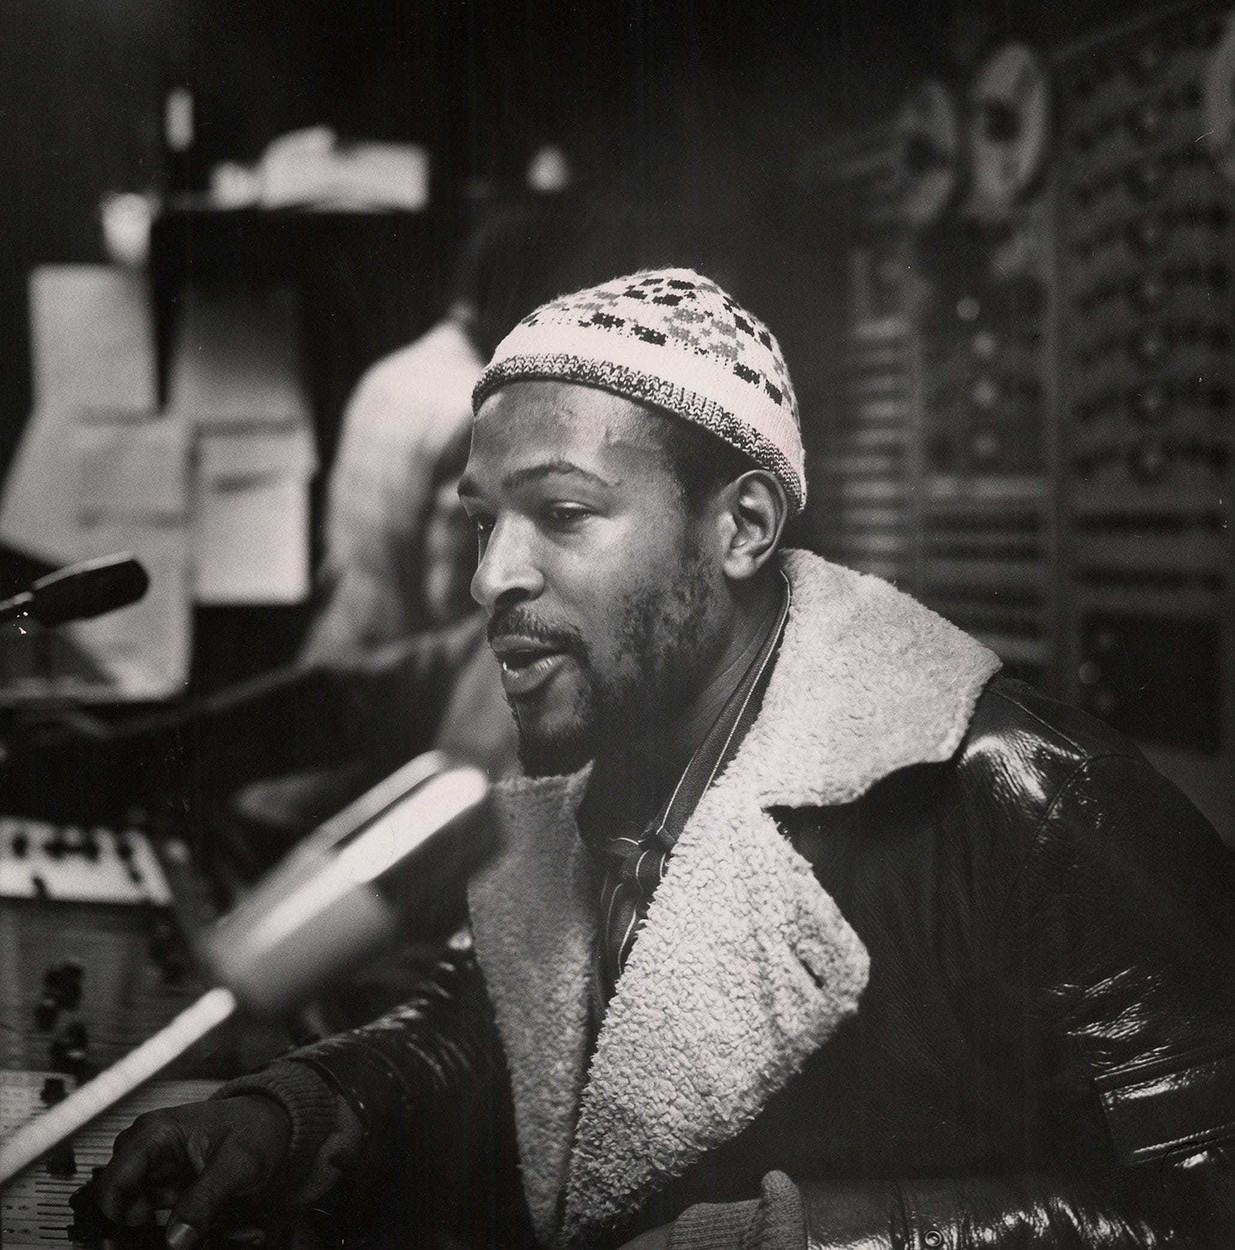 Marvin Gaye, photographed in the Motown studio console room in early 1971 by Gordon Staples, concertmaster of the Detroit Symphony Orchestra.,Image: 542678902, License: Rights-managed, Restrictions: HFA WEB BL LN*** World Rights *** US Newspapers Out *** NO TV, VIDEO, FILM ***, Model Release: no, Credit line: TNS / ddp USA / Profimedia